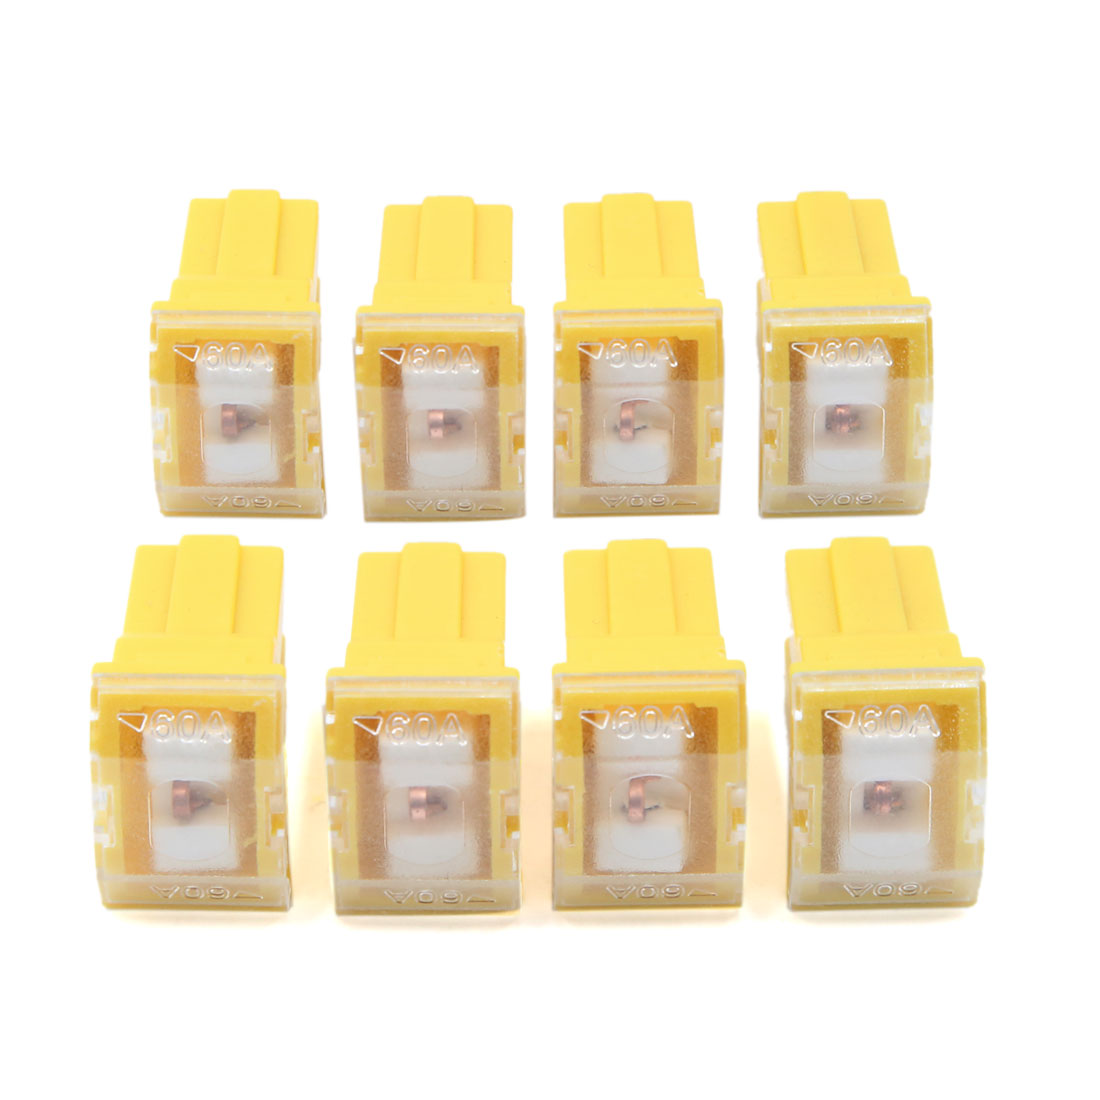 8Pcs Yellow Roof Shape Auto Car Push-in Type Female PAL Cartridge Fuse 60A